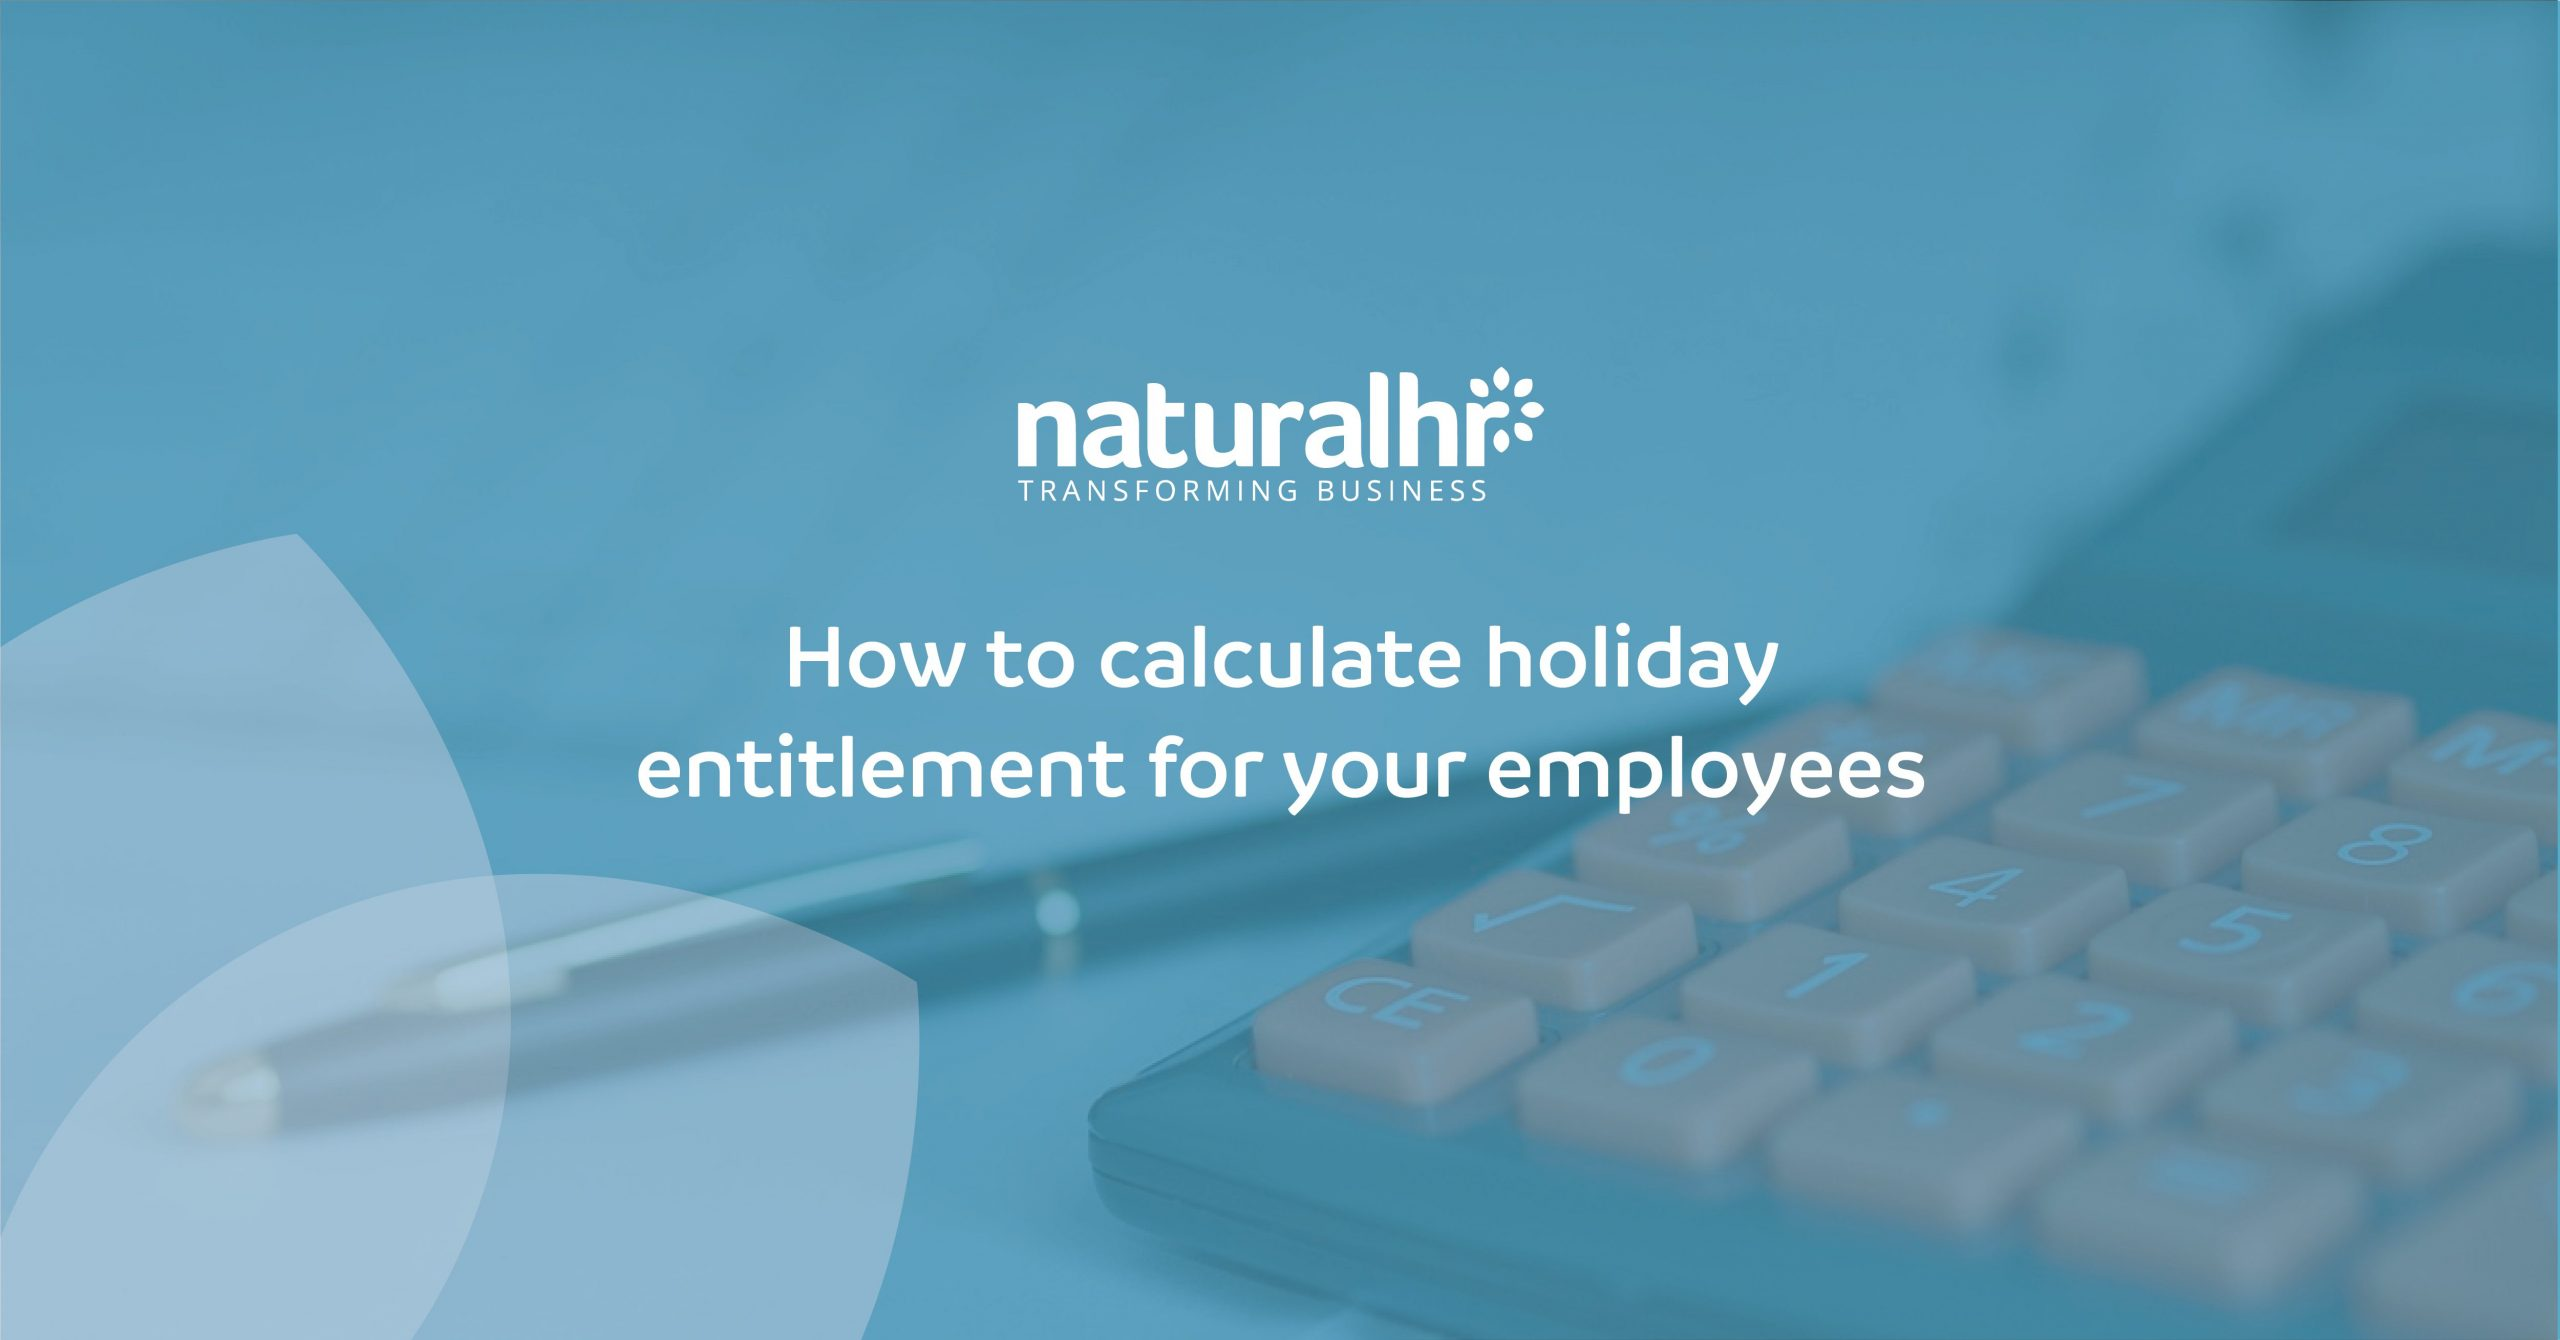 How to calculate holiday entitlement for your employees